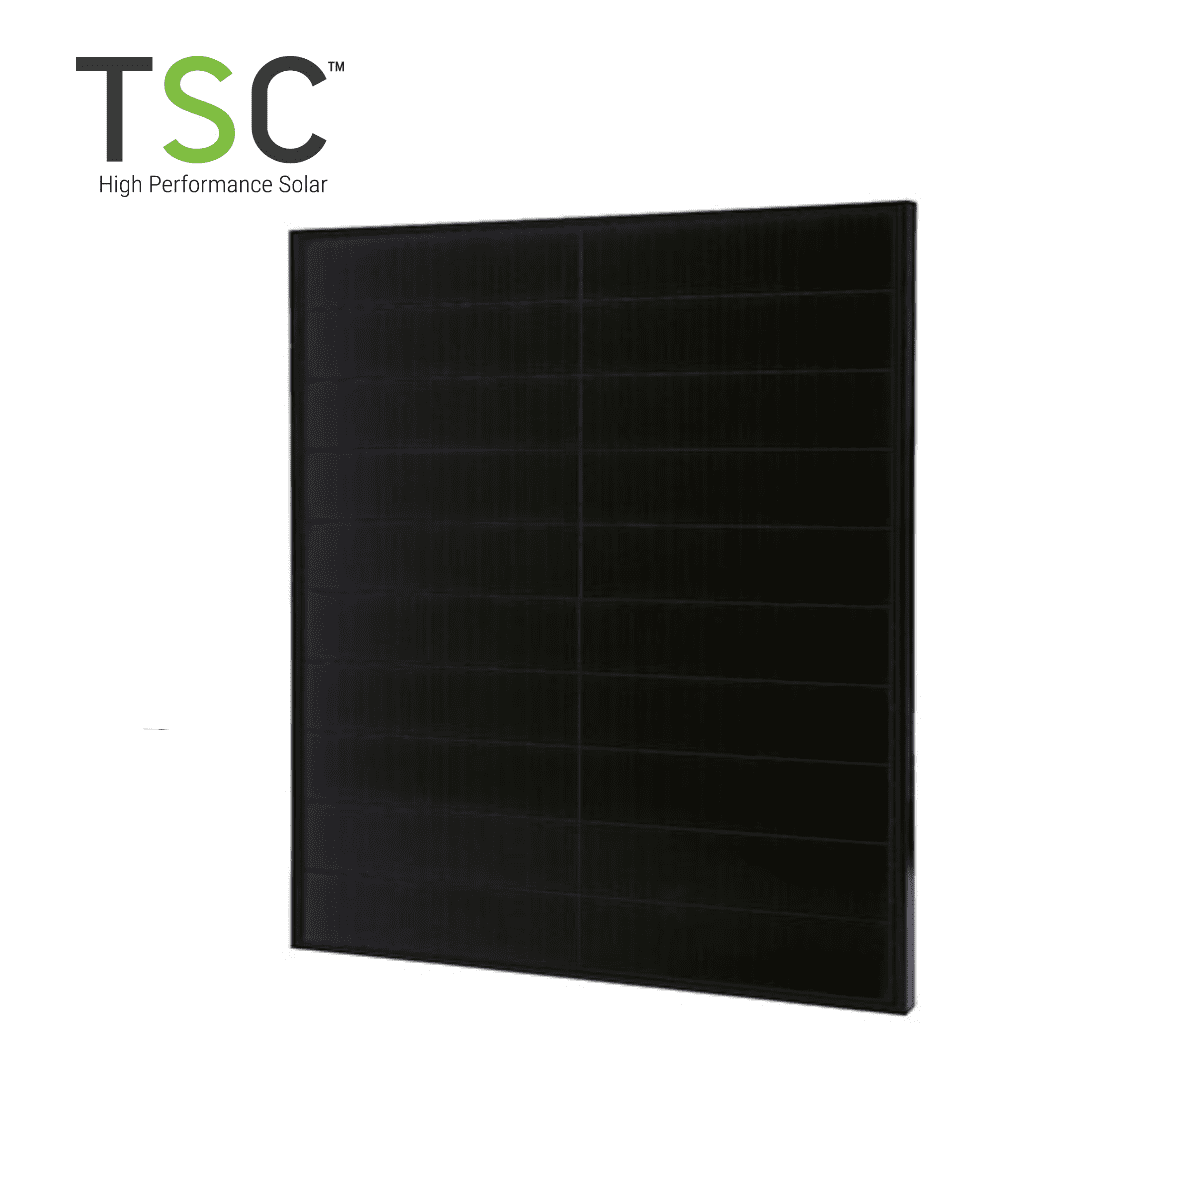 TSC PowerXT-400R-PM 400W Solar Panel